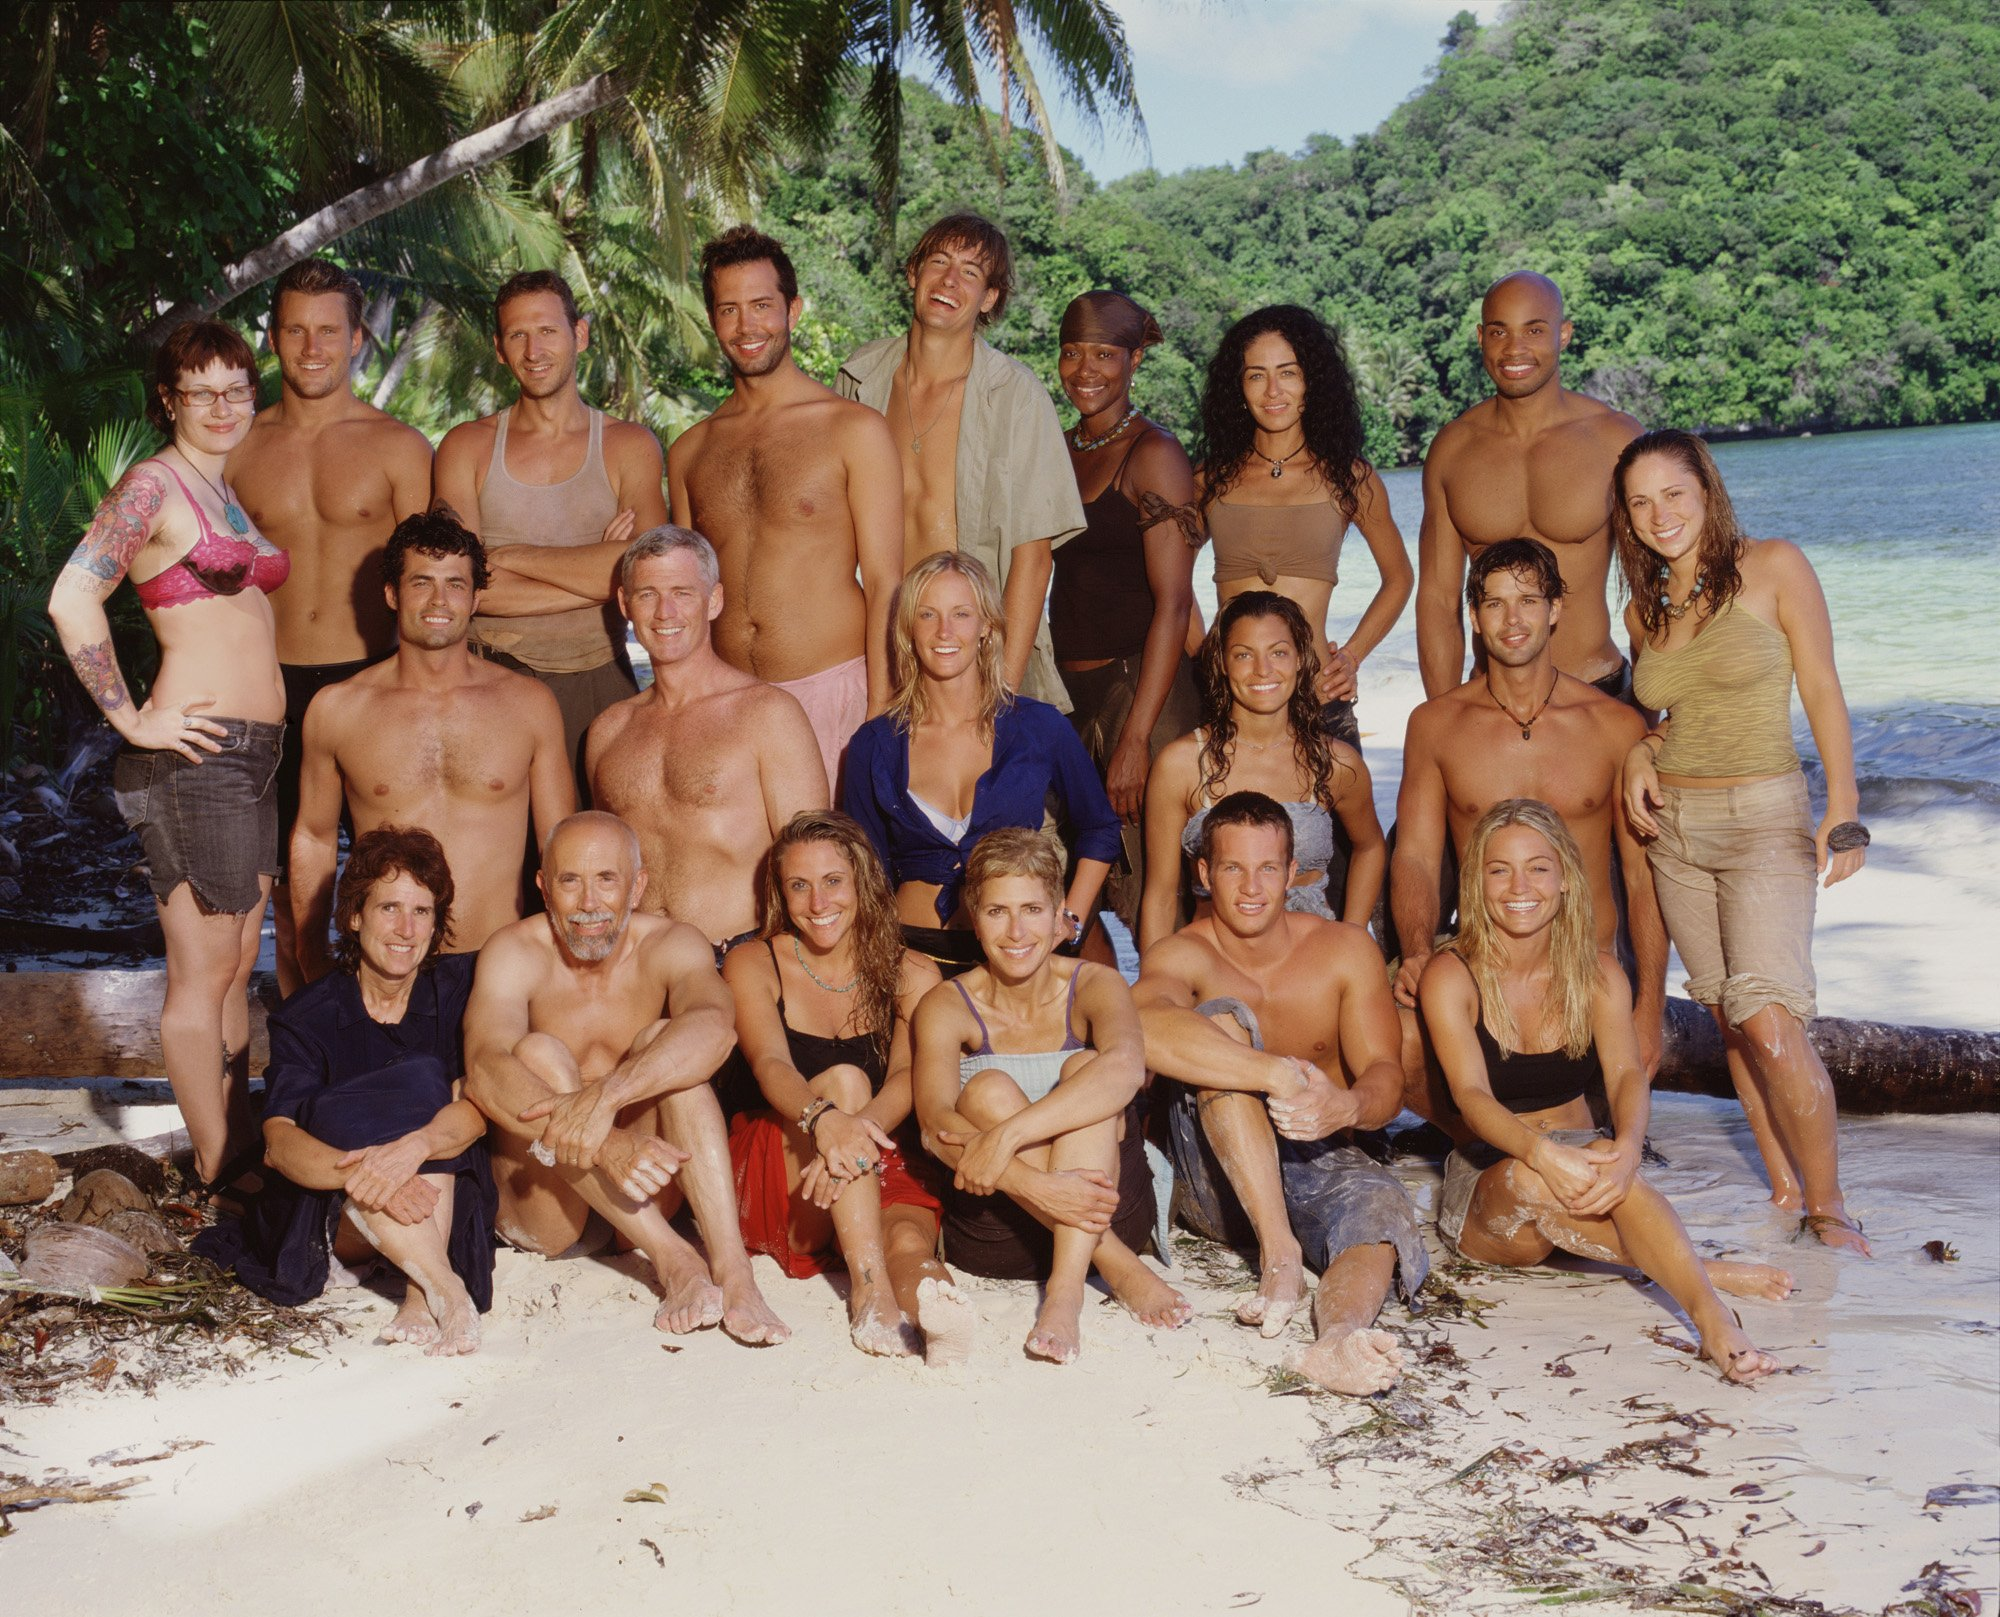 """Angie Jakusz on the back row with fellow castaways who participated in """"Survivor: Palau,"""" photo taken on October 30, 2004, at Kokor, Palau   Photo:Monty Brinton/CBS Photo Archive/Getty Images"""